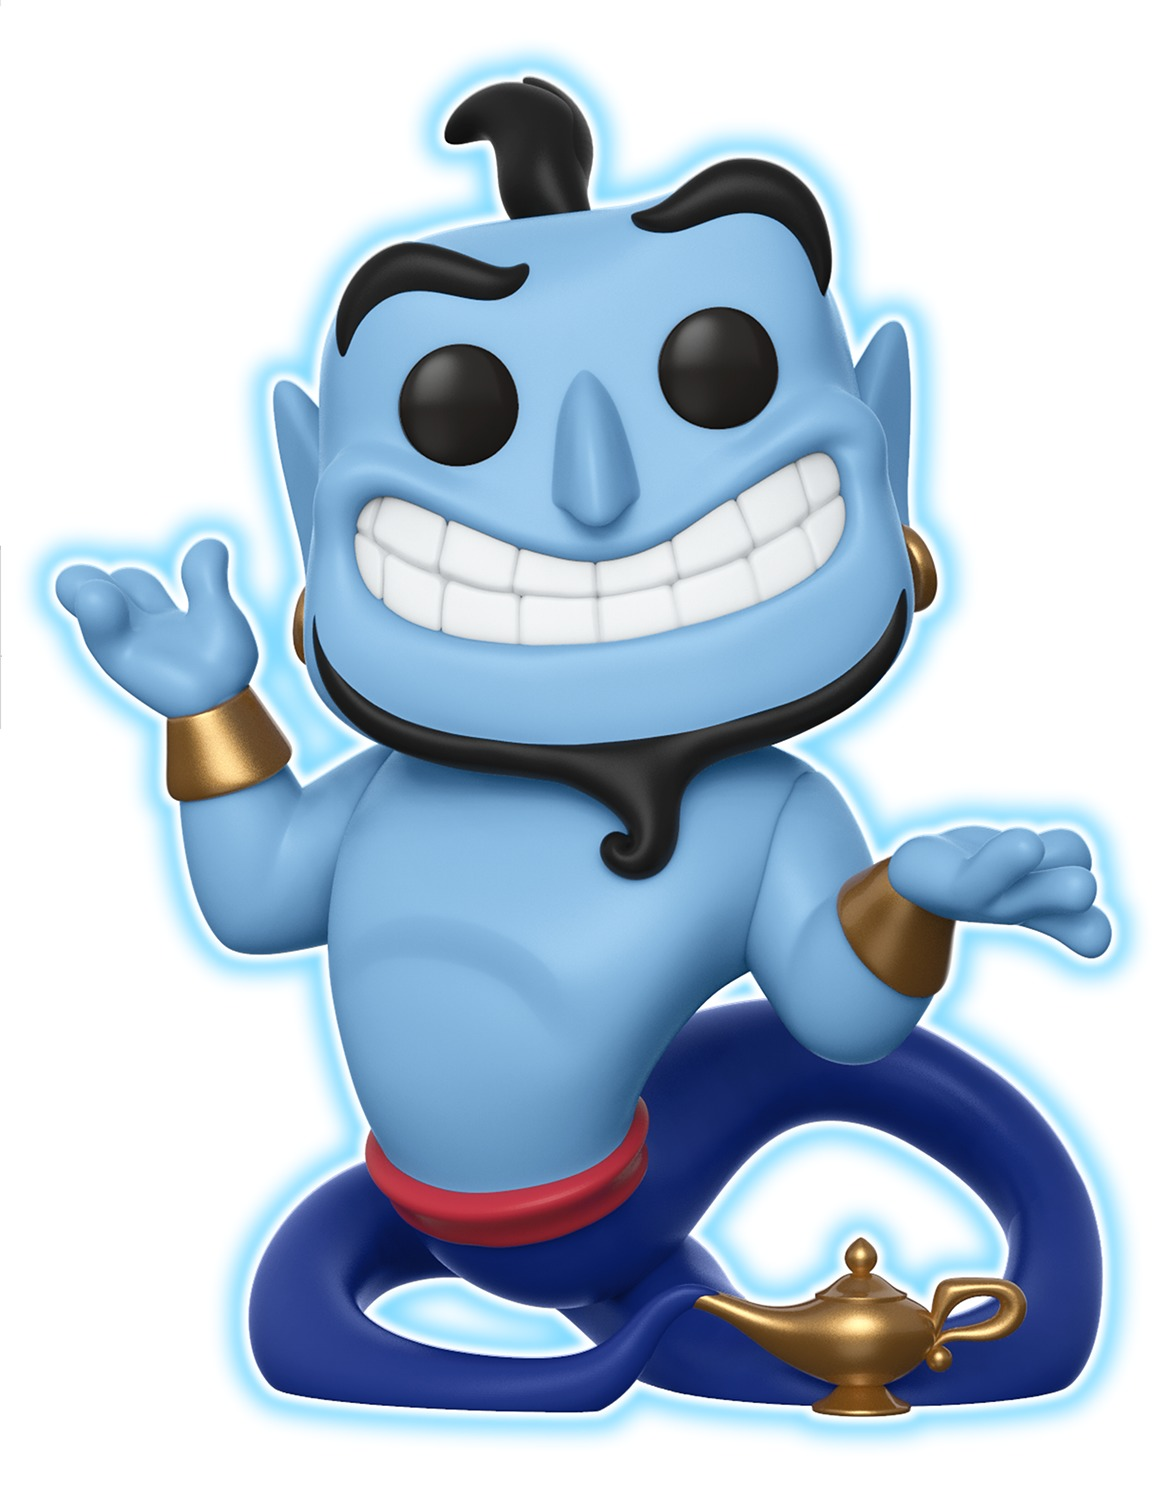 Aladdin - Genie with Lamp (Glow) Pop! Vinyl Figure image